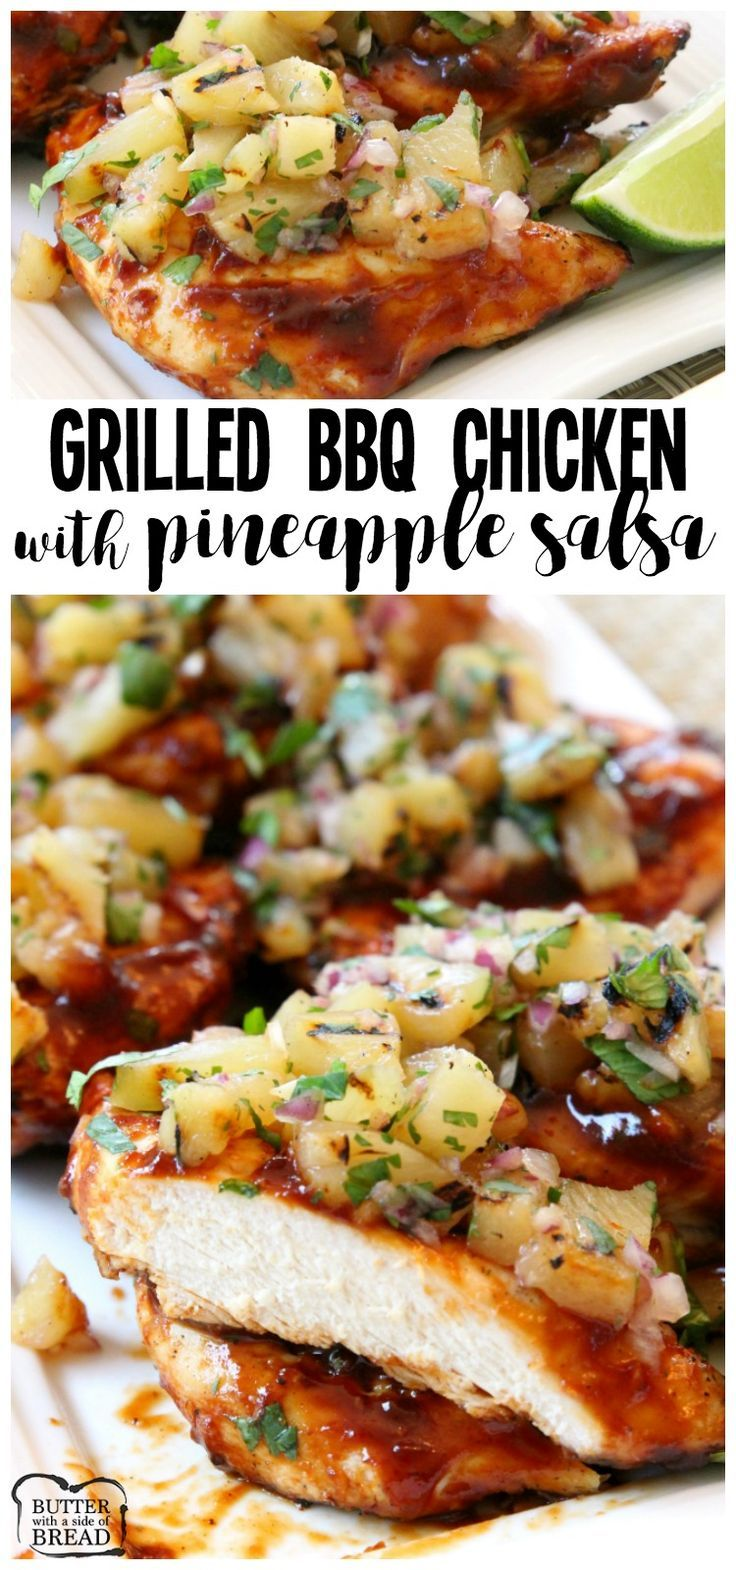 Easy Grilled Chicken smothered with thick & flavorful bbq sauce then topped with a delicious pineapple salsa is what's for dinner! Perfect for weeknights or weekend get-togethers, the pineapple salsa pairs perfectly with the tangy grilled barbecue chicken. Easy chicken recipe from Butter With A Side of Bread via @ButterGirls #grillingrecipes